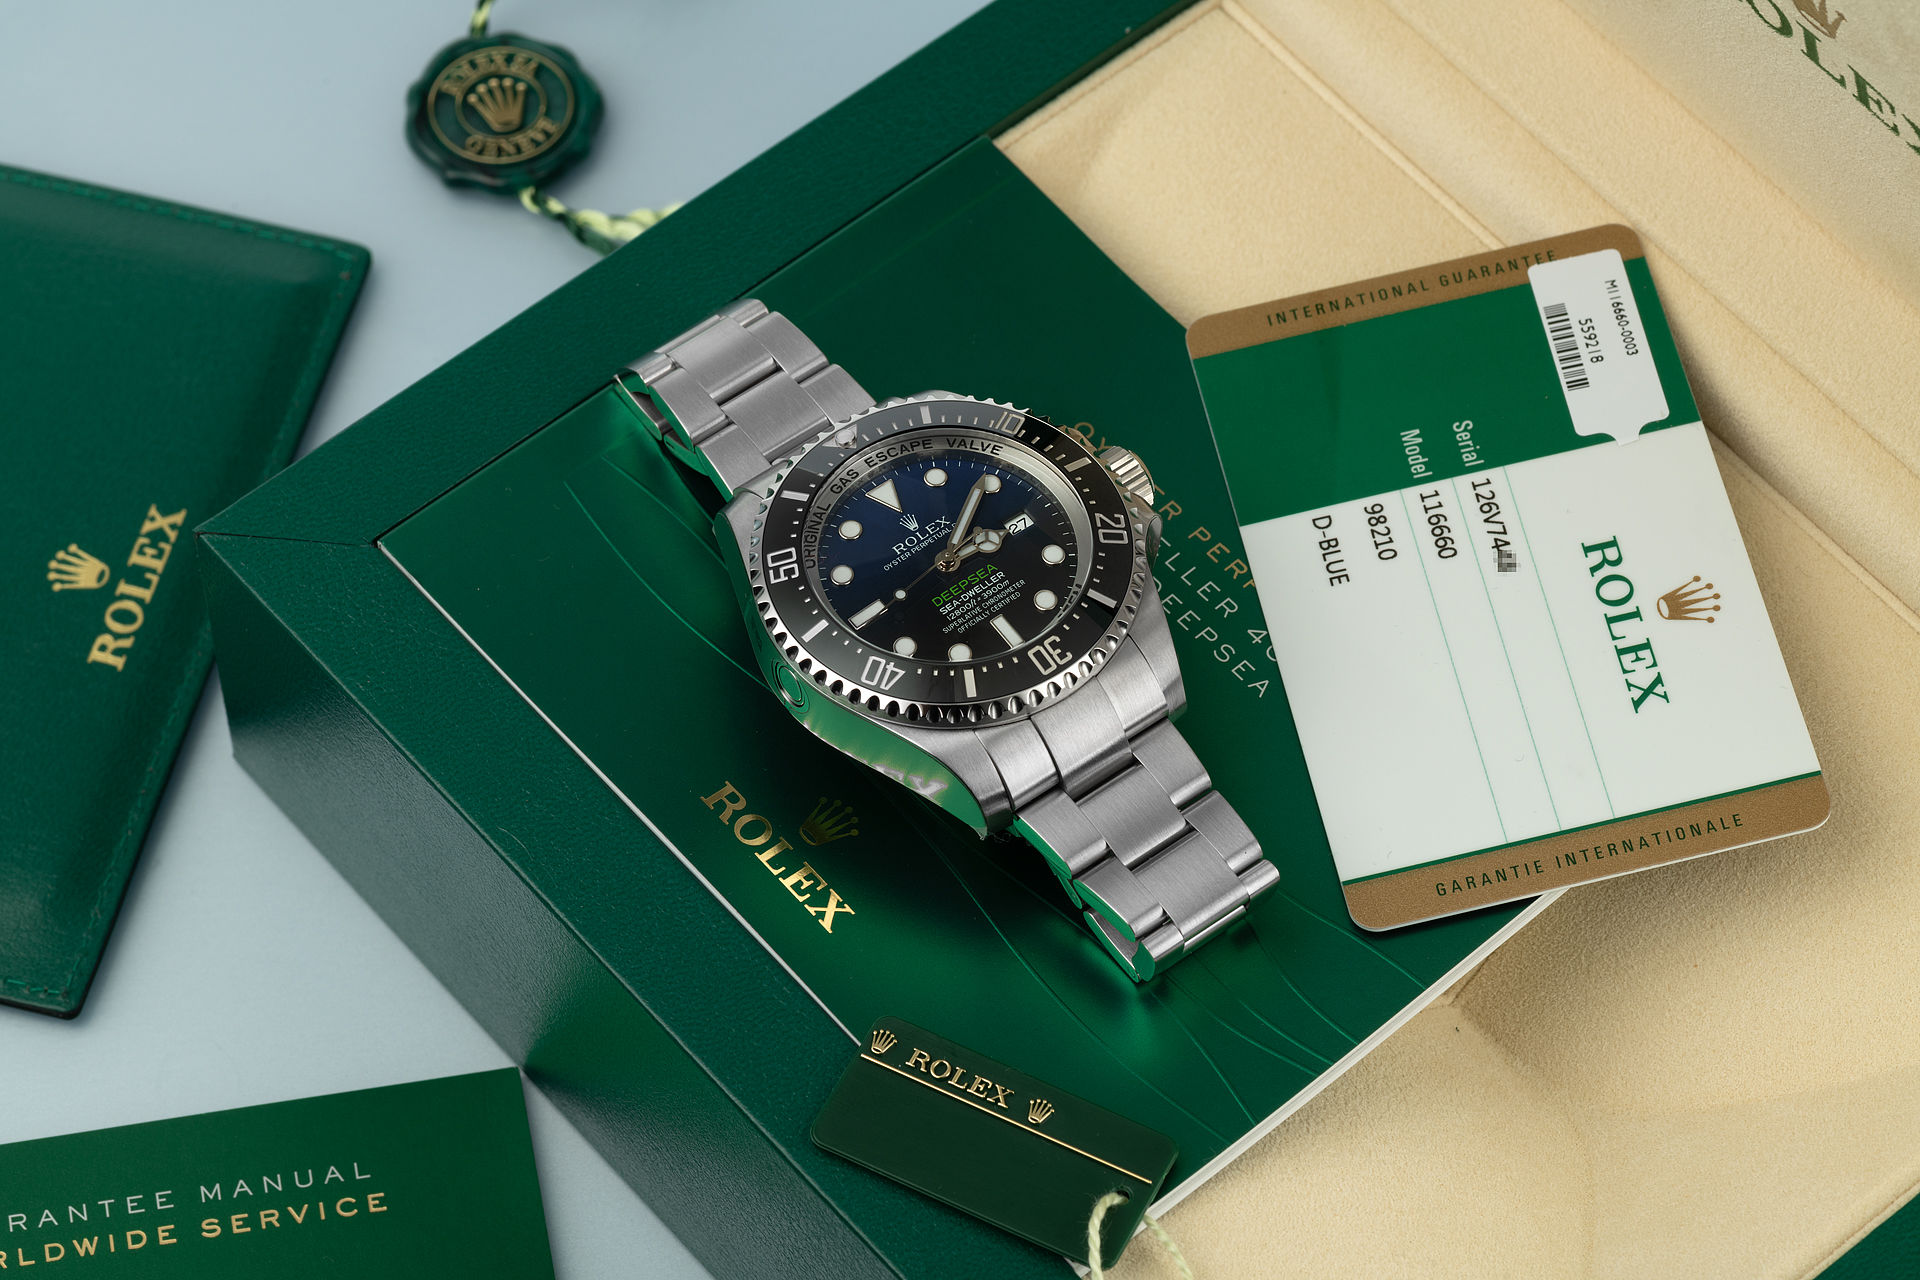 ref 116660 | Rolex Warranty to 2020 | Rolex Deepsea D-Blue